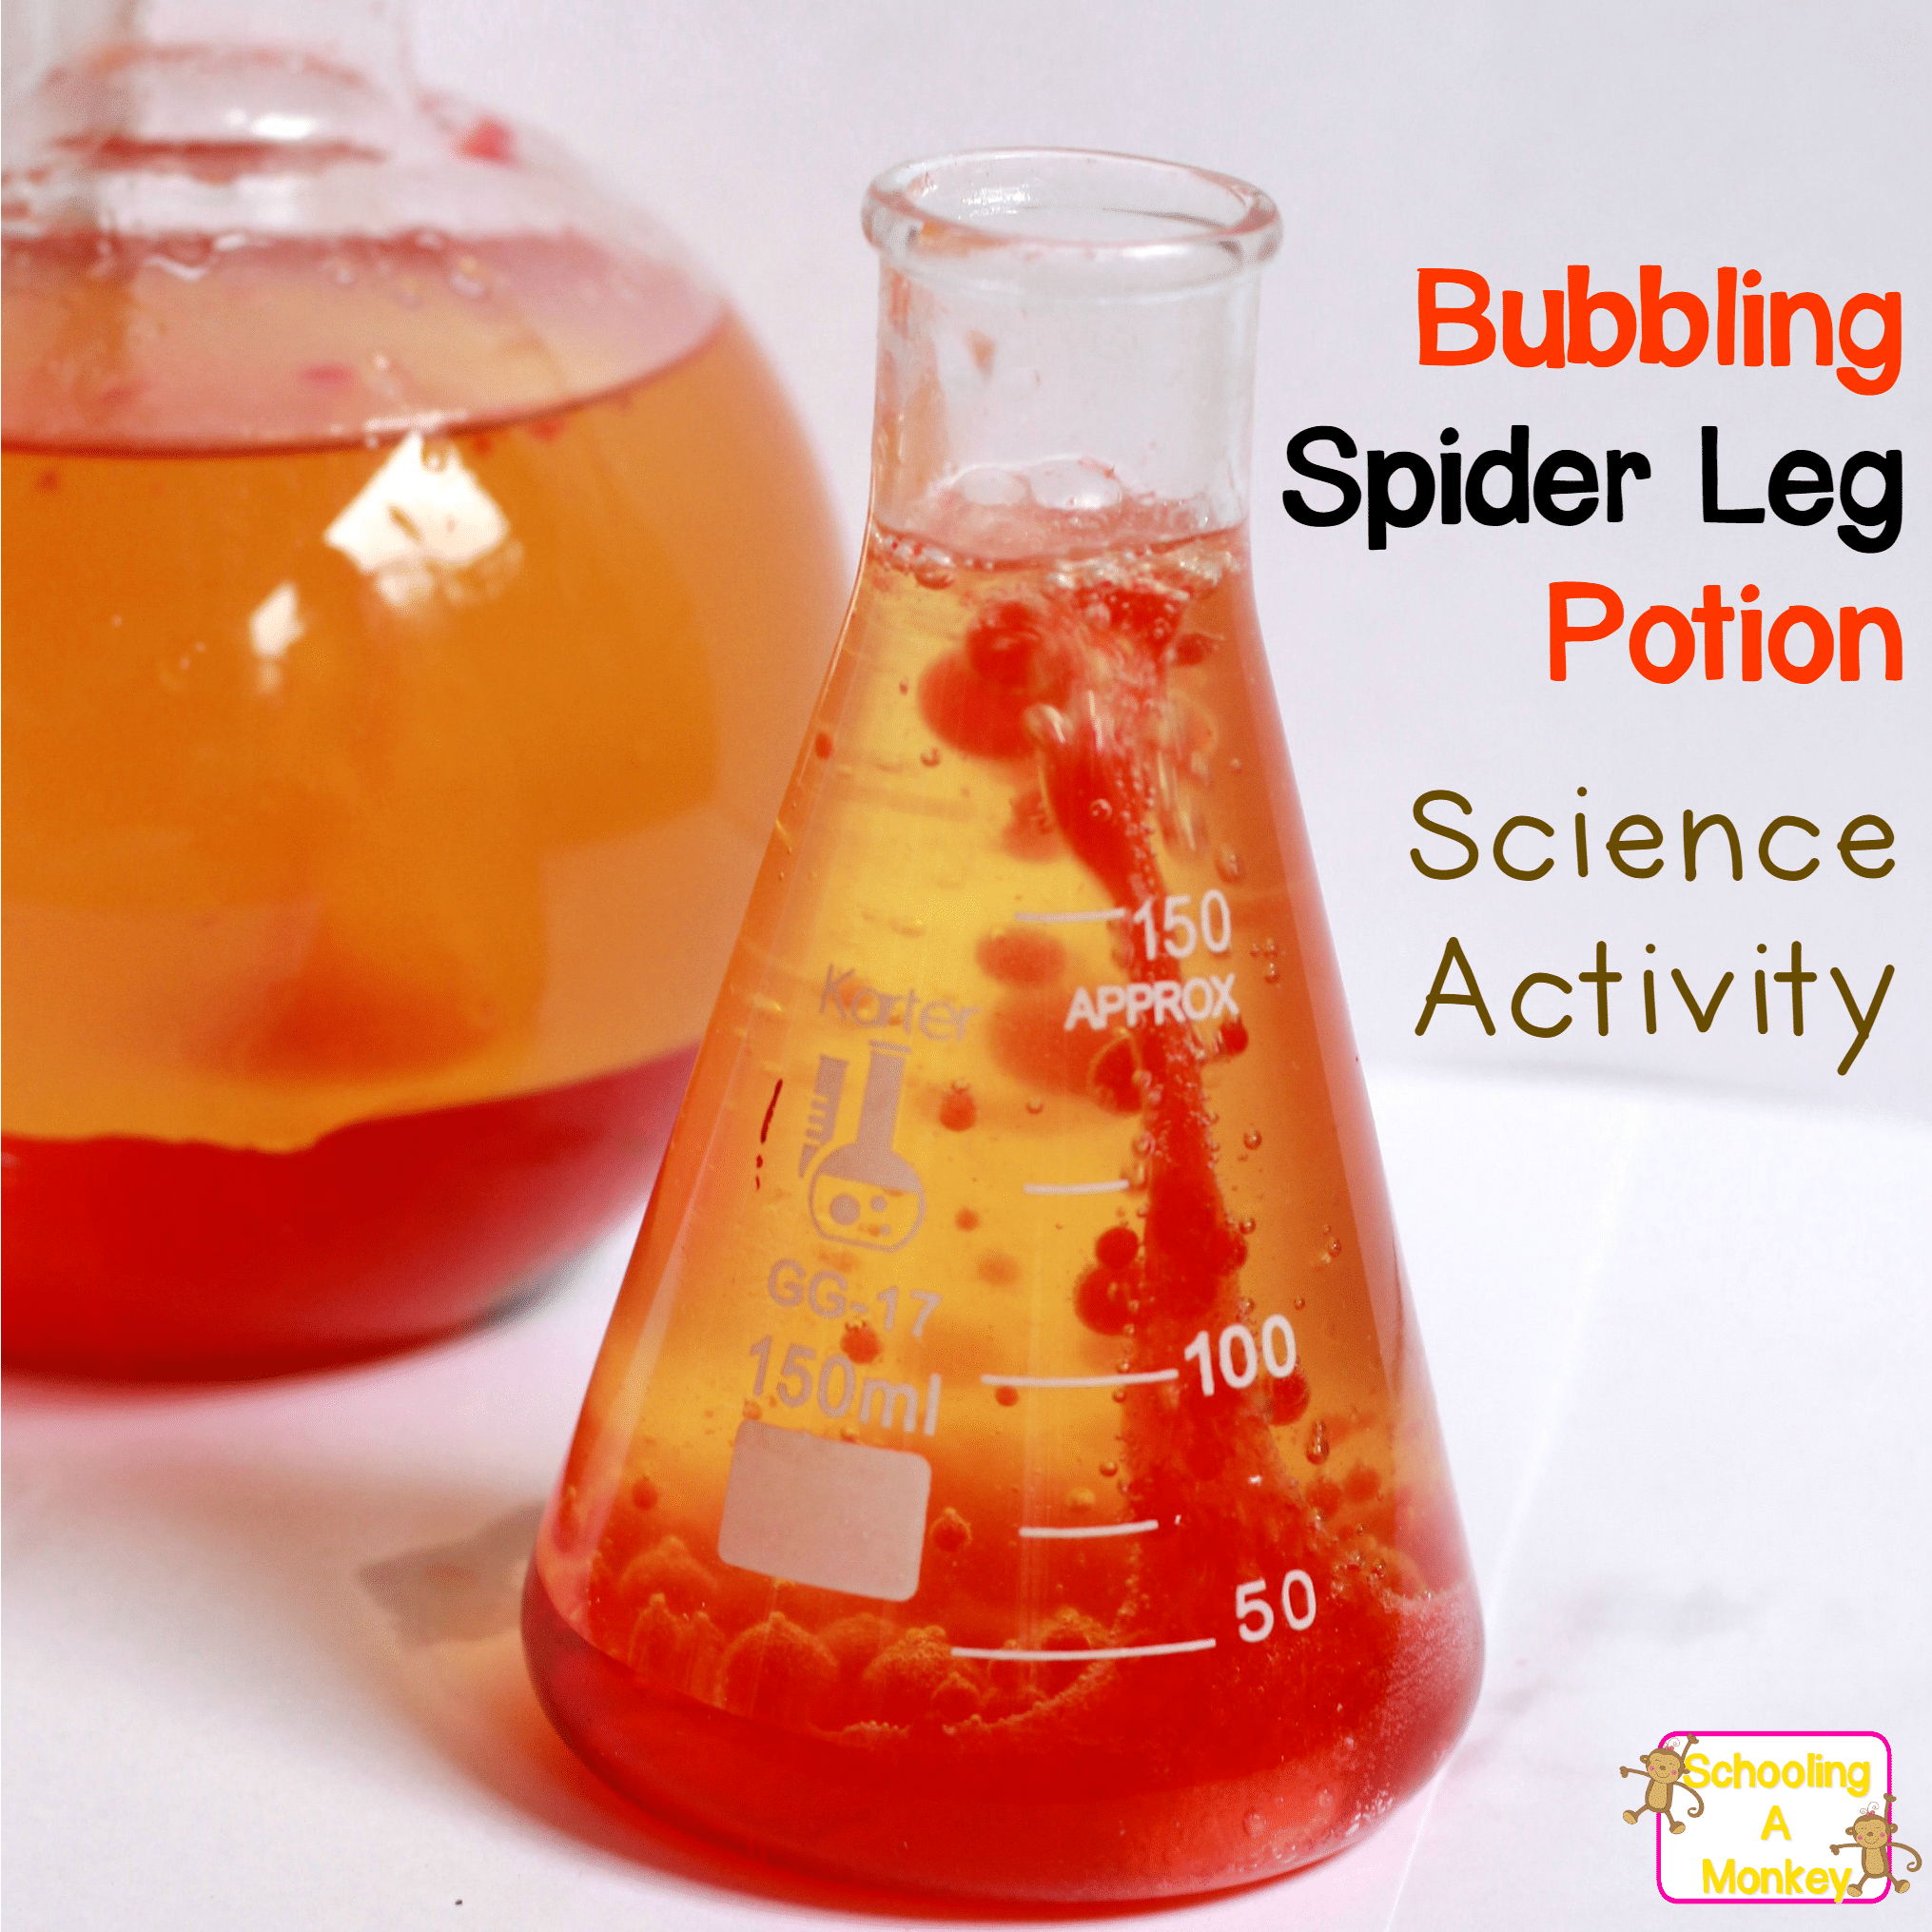 Halloween science projects are the perfect way to introduce science to kids. This spider leg potion is a creepy twist on a classic science experiment.